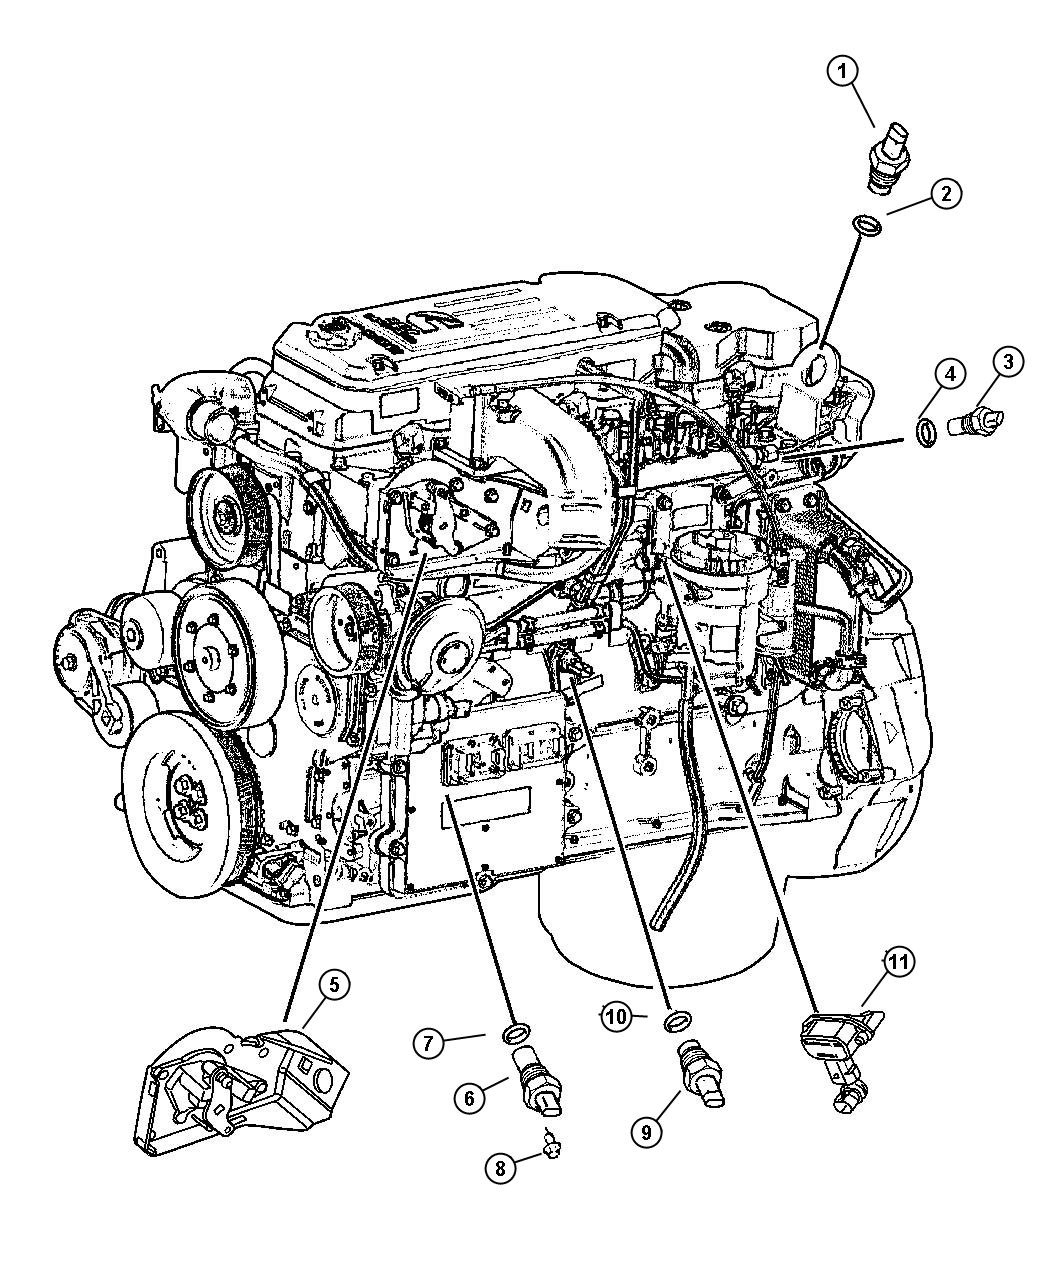 Dodge 5 9 Engine Diagram Another Blog About Wiring 2500 Get Free Image